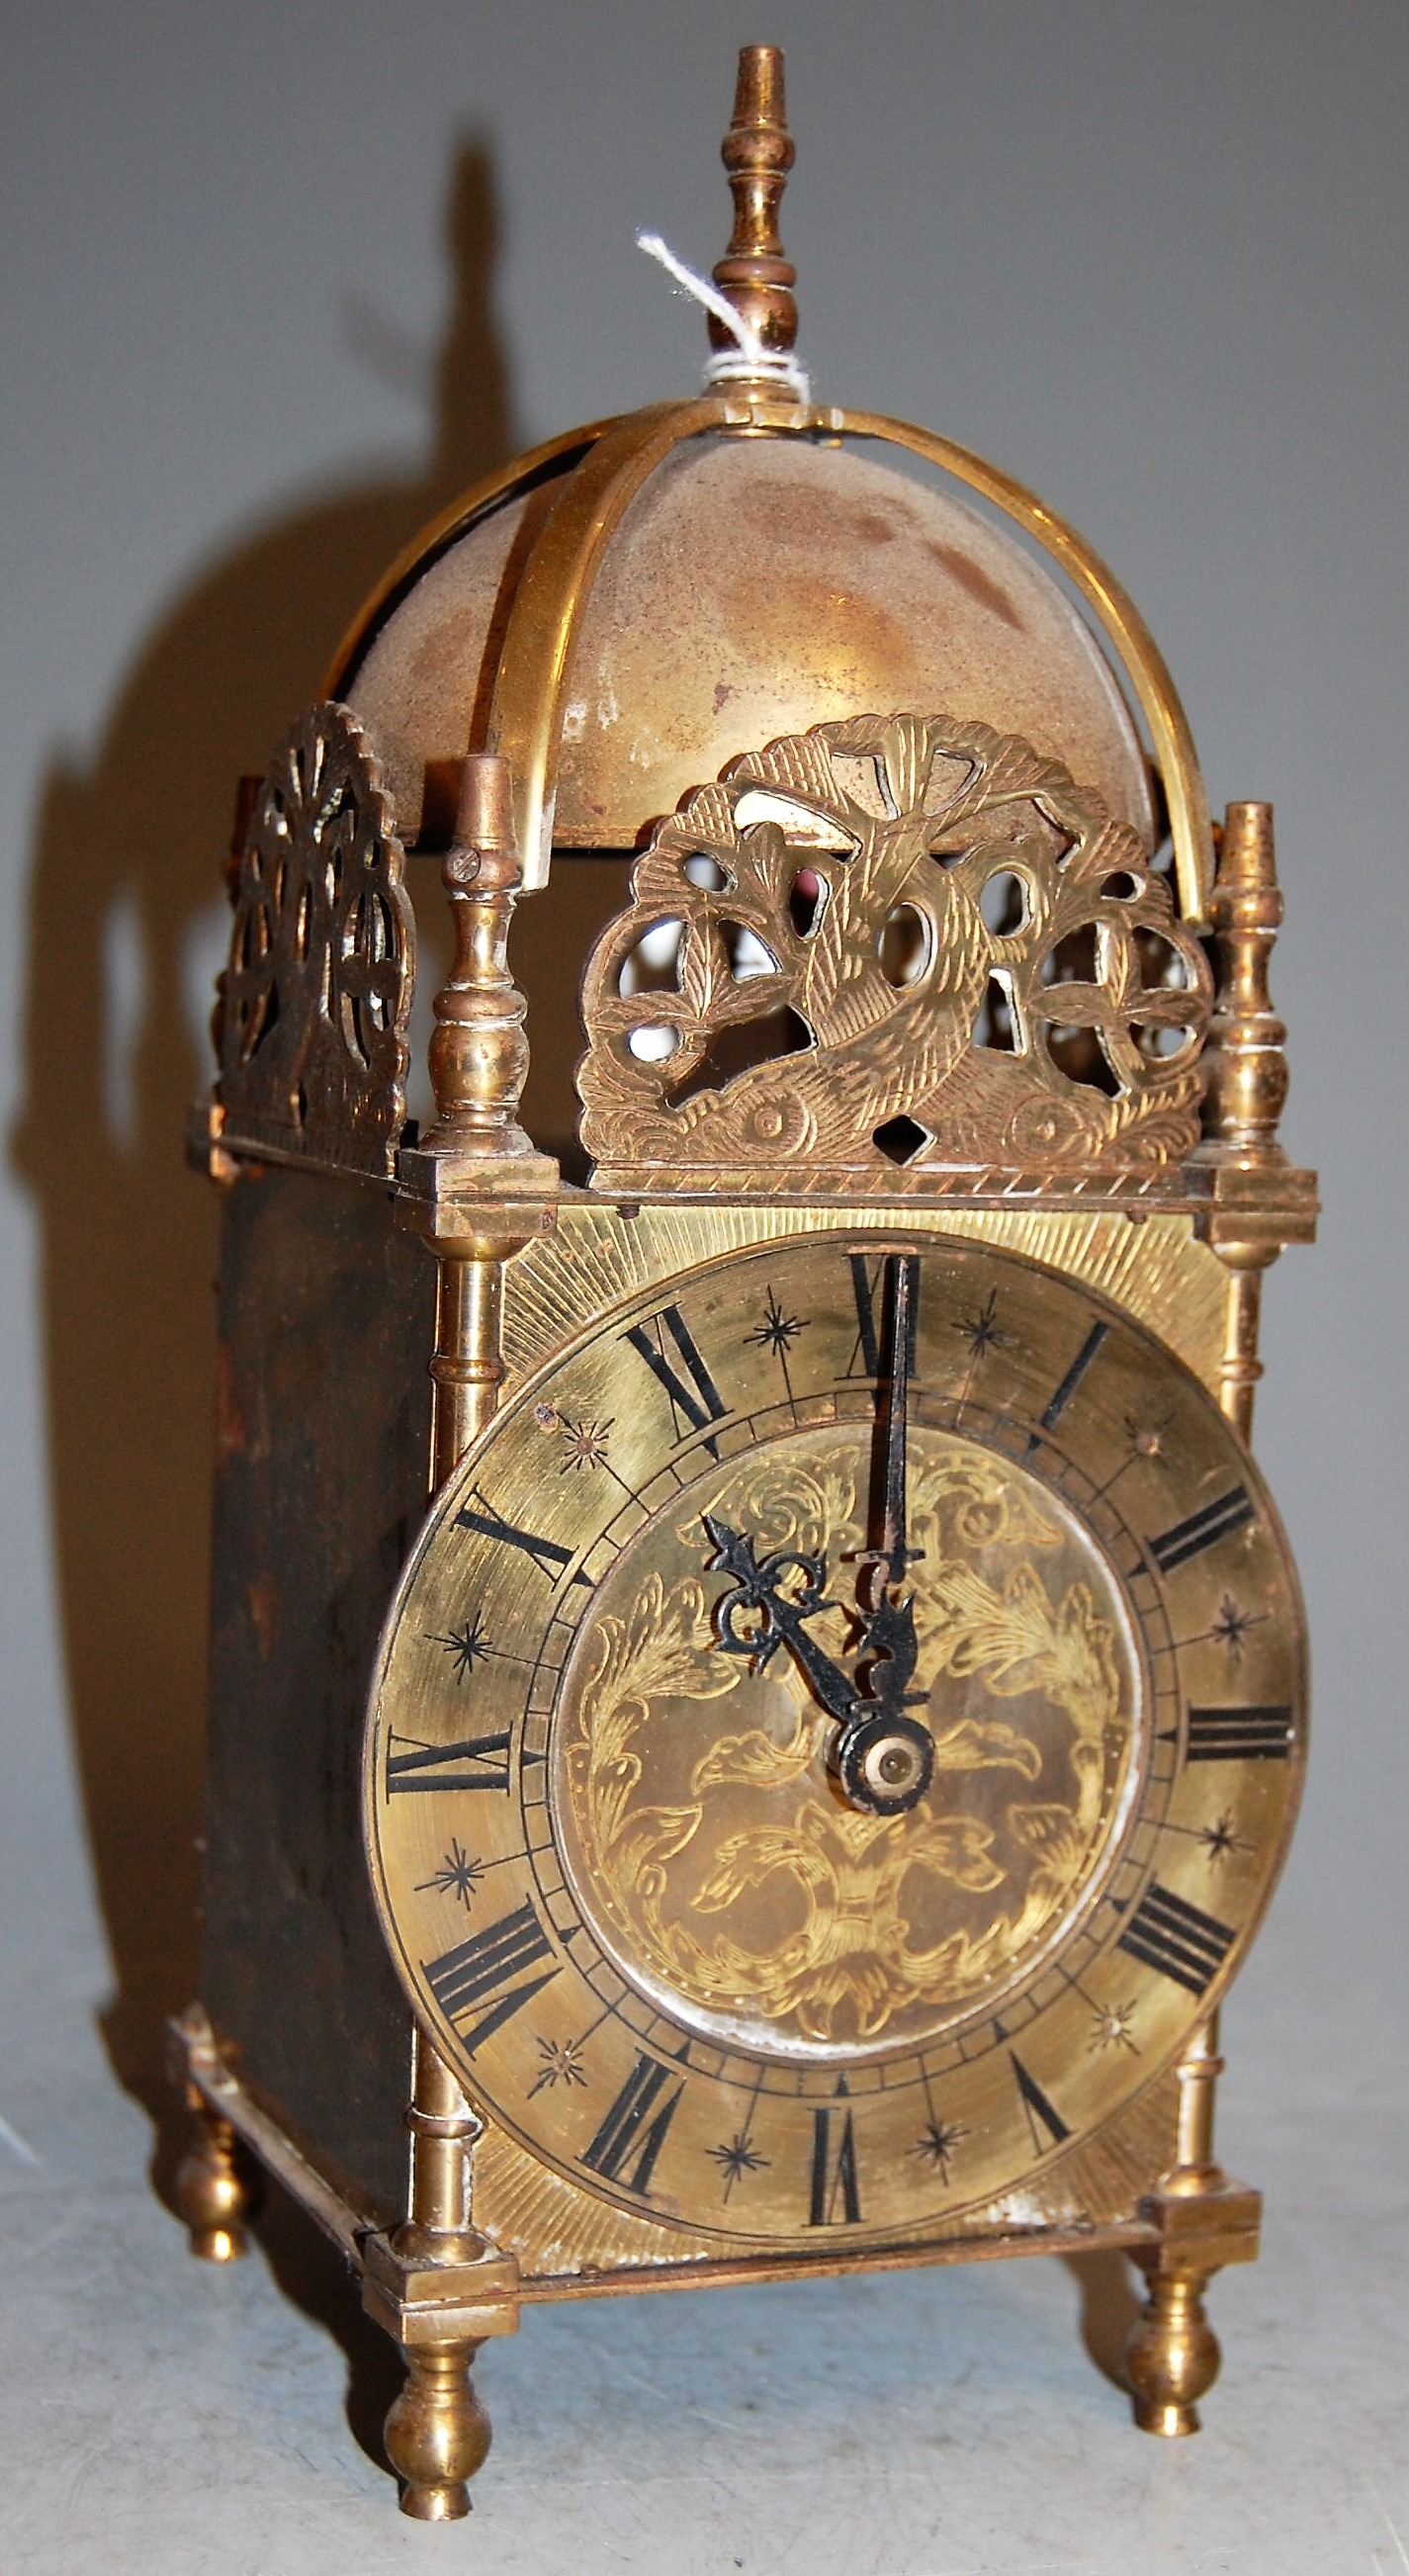 Lot 43 - A brass lantern clock in the 17th century style, h.26cm